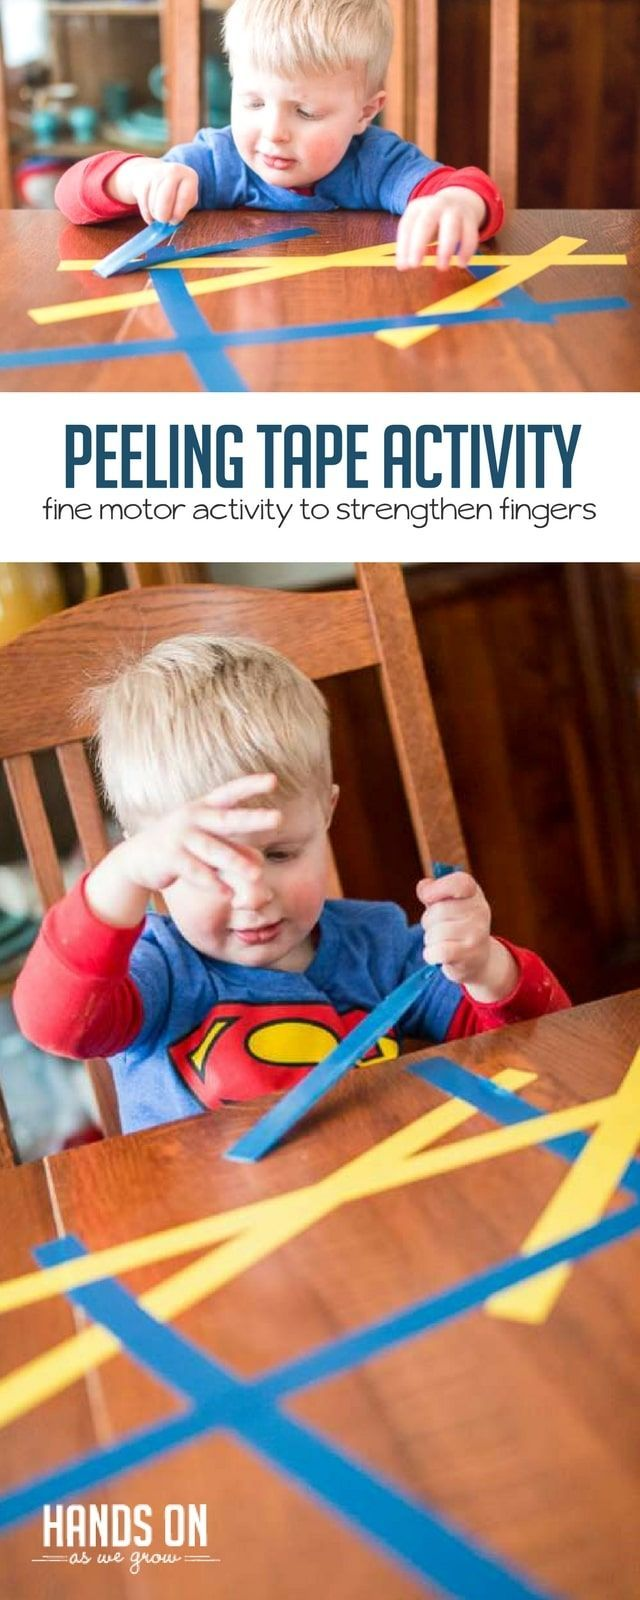 Peel tape off the table (fine motor skills!) via @handsonaswegrow